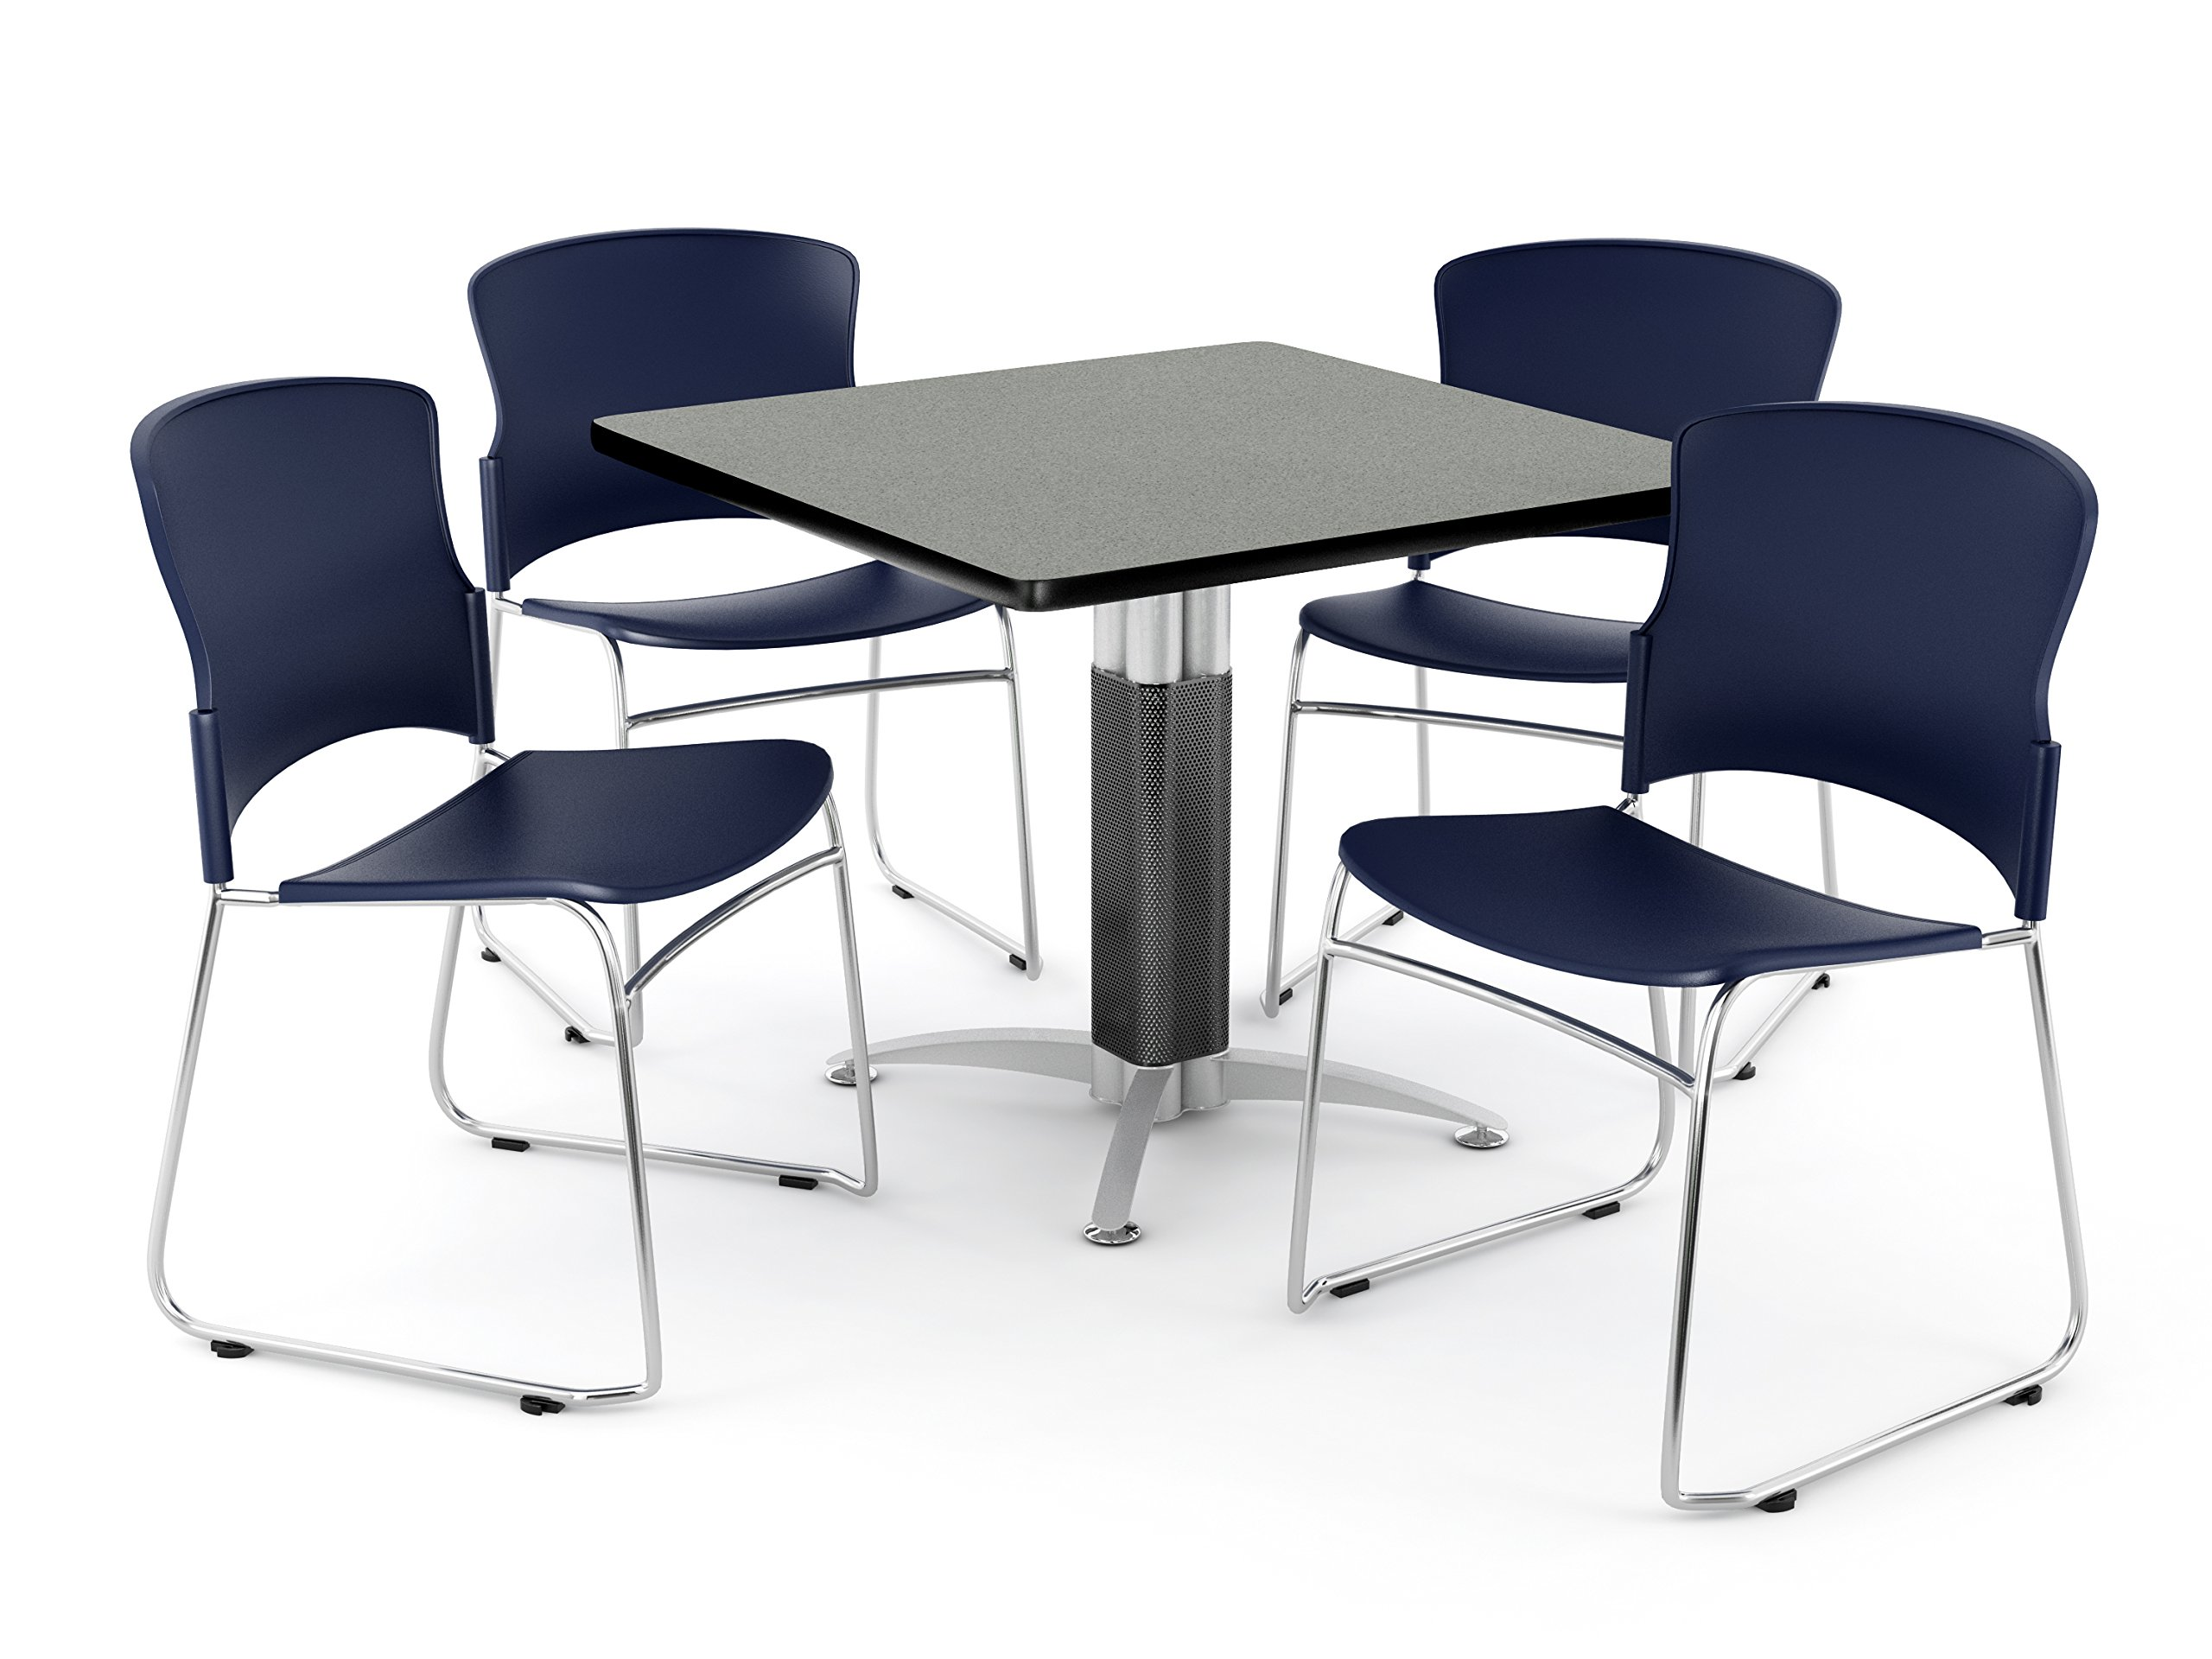 OFM PKG-BRK-030-0008 Breakroom Package, Gray Nebula Table/Navy Chair